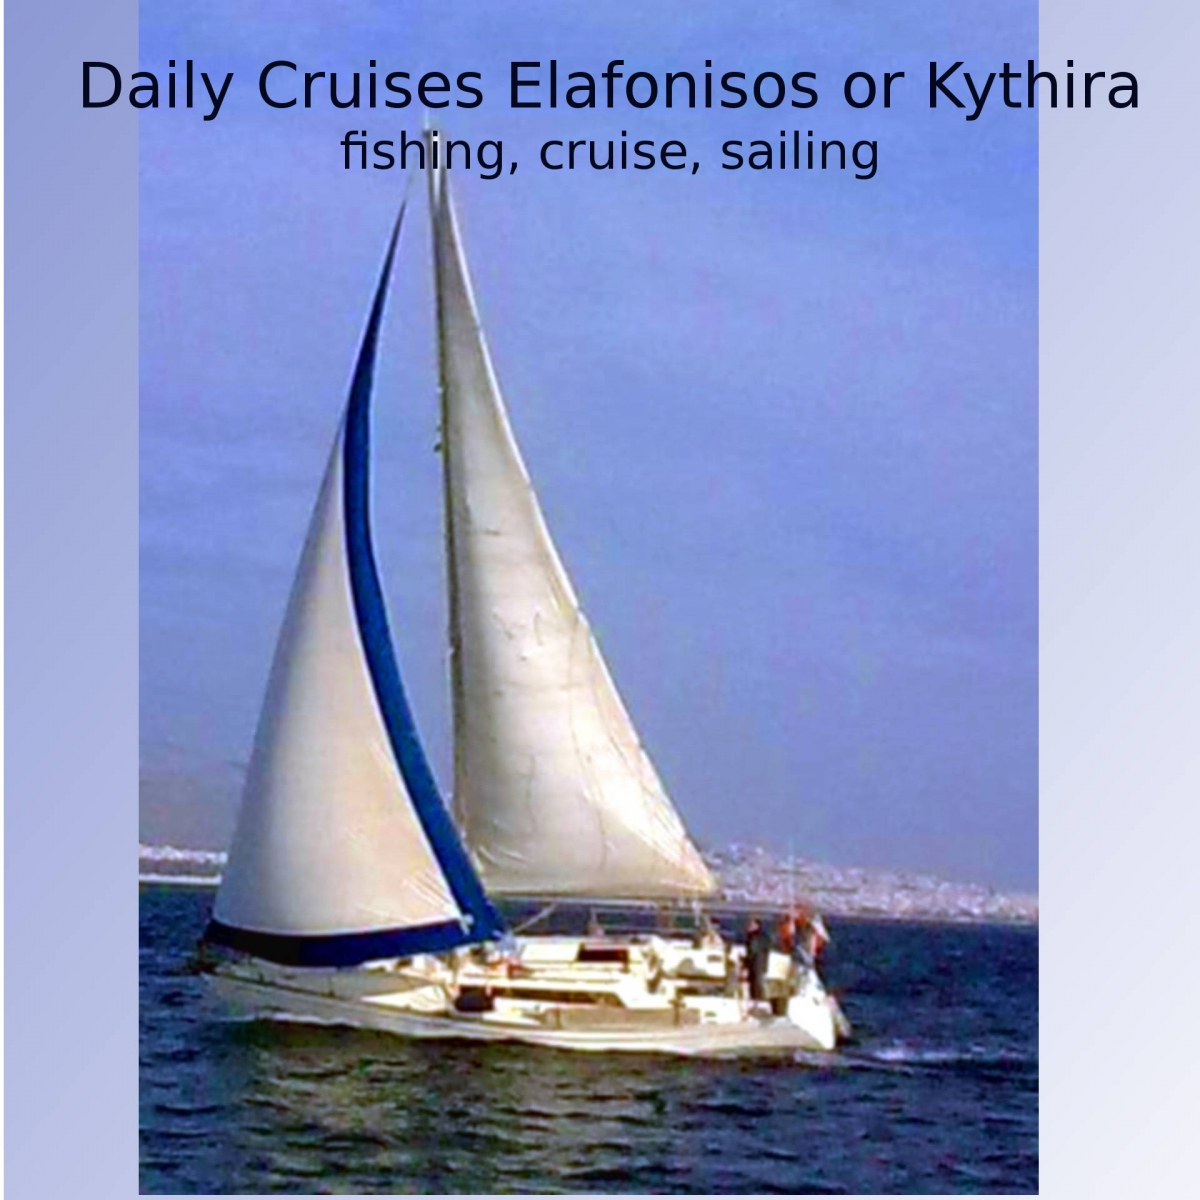 Elafonisos fishing, cruise, sailing